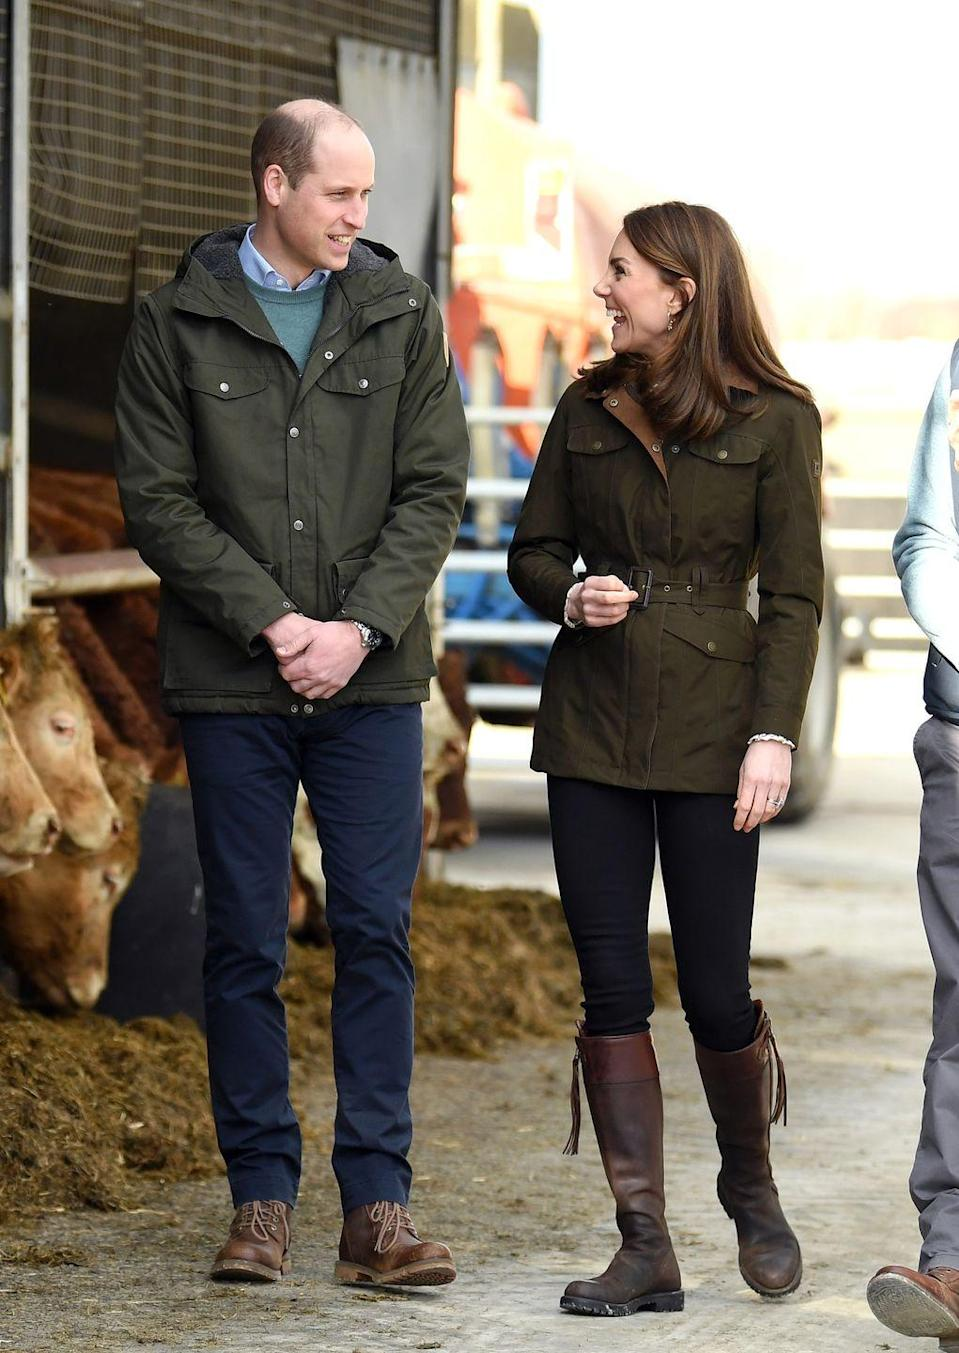 "<p>For Kate's second outfit of the day, she put on something a bit more comfortable and durable. To visit Teagasc Research Farm in County Meath, Ireland, Kate swapped out her top and shoes, wearing a <a href=""https://www.dubarry.com/us/women/clothing/jackets-vests/friel-utility-jacket-olive?c=42"" rel=""nofollow noopener"" target=""_blank"" data-ylk=""slk:Dubarry of Ireland belted, waxed jacket"" class=""link rapid-noclick-resp"">Dubarry of Ireland belted, waxed jacket</a> and some of her <a href=""https://www.penelopechilvers.com/us/long-tassel-boot-conker.html"" rel=""nofollow noopener"" target=""_blank"" data-ylk=""slk:favorite riding boots"" class=""link rapid-noclick-resp"">favorite riding boots</a>. </p>"